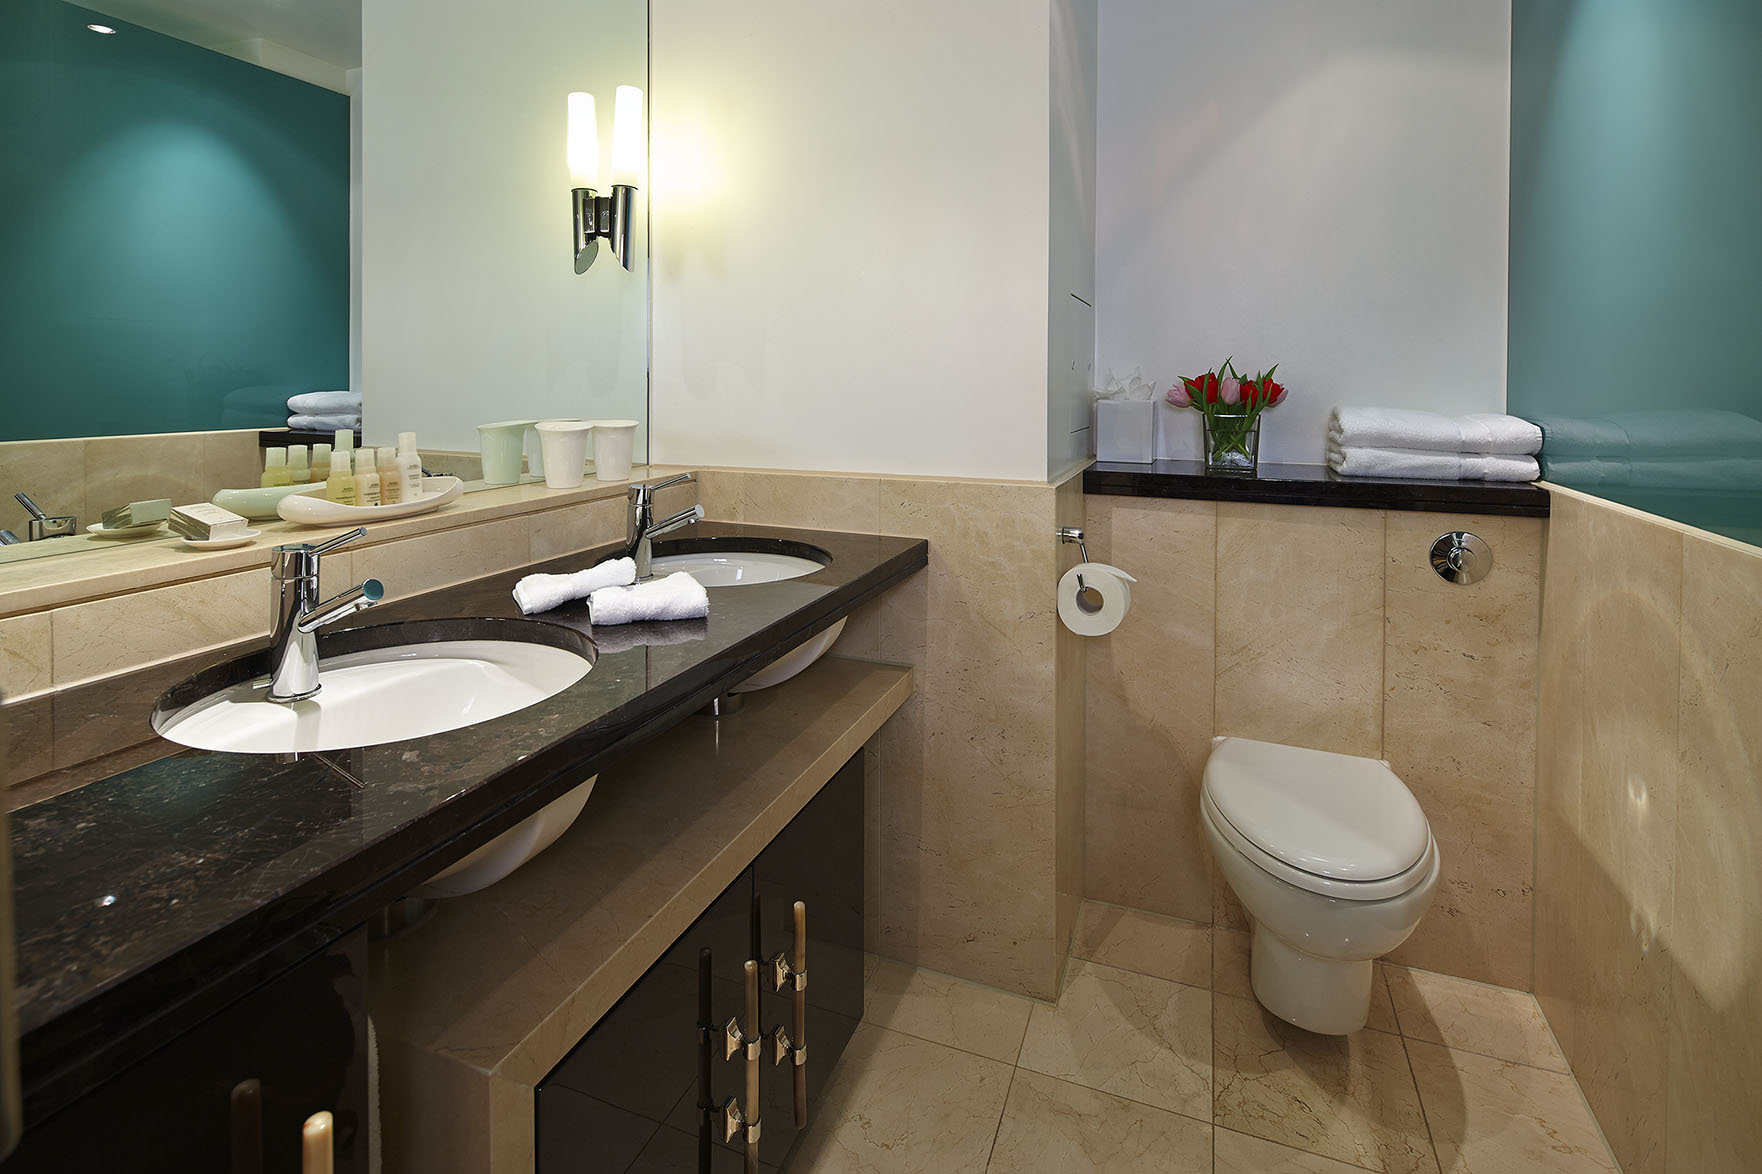 Bathroom at Cheval Phoenix House, Chelsea, London